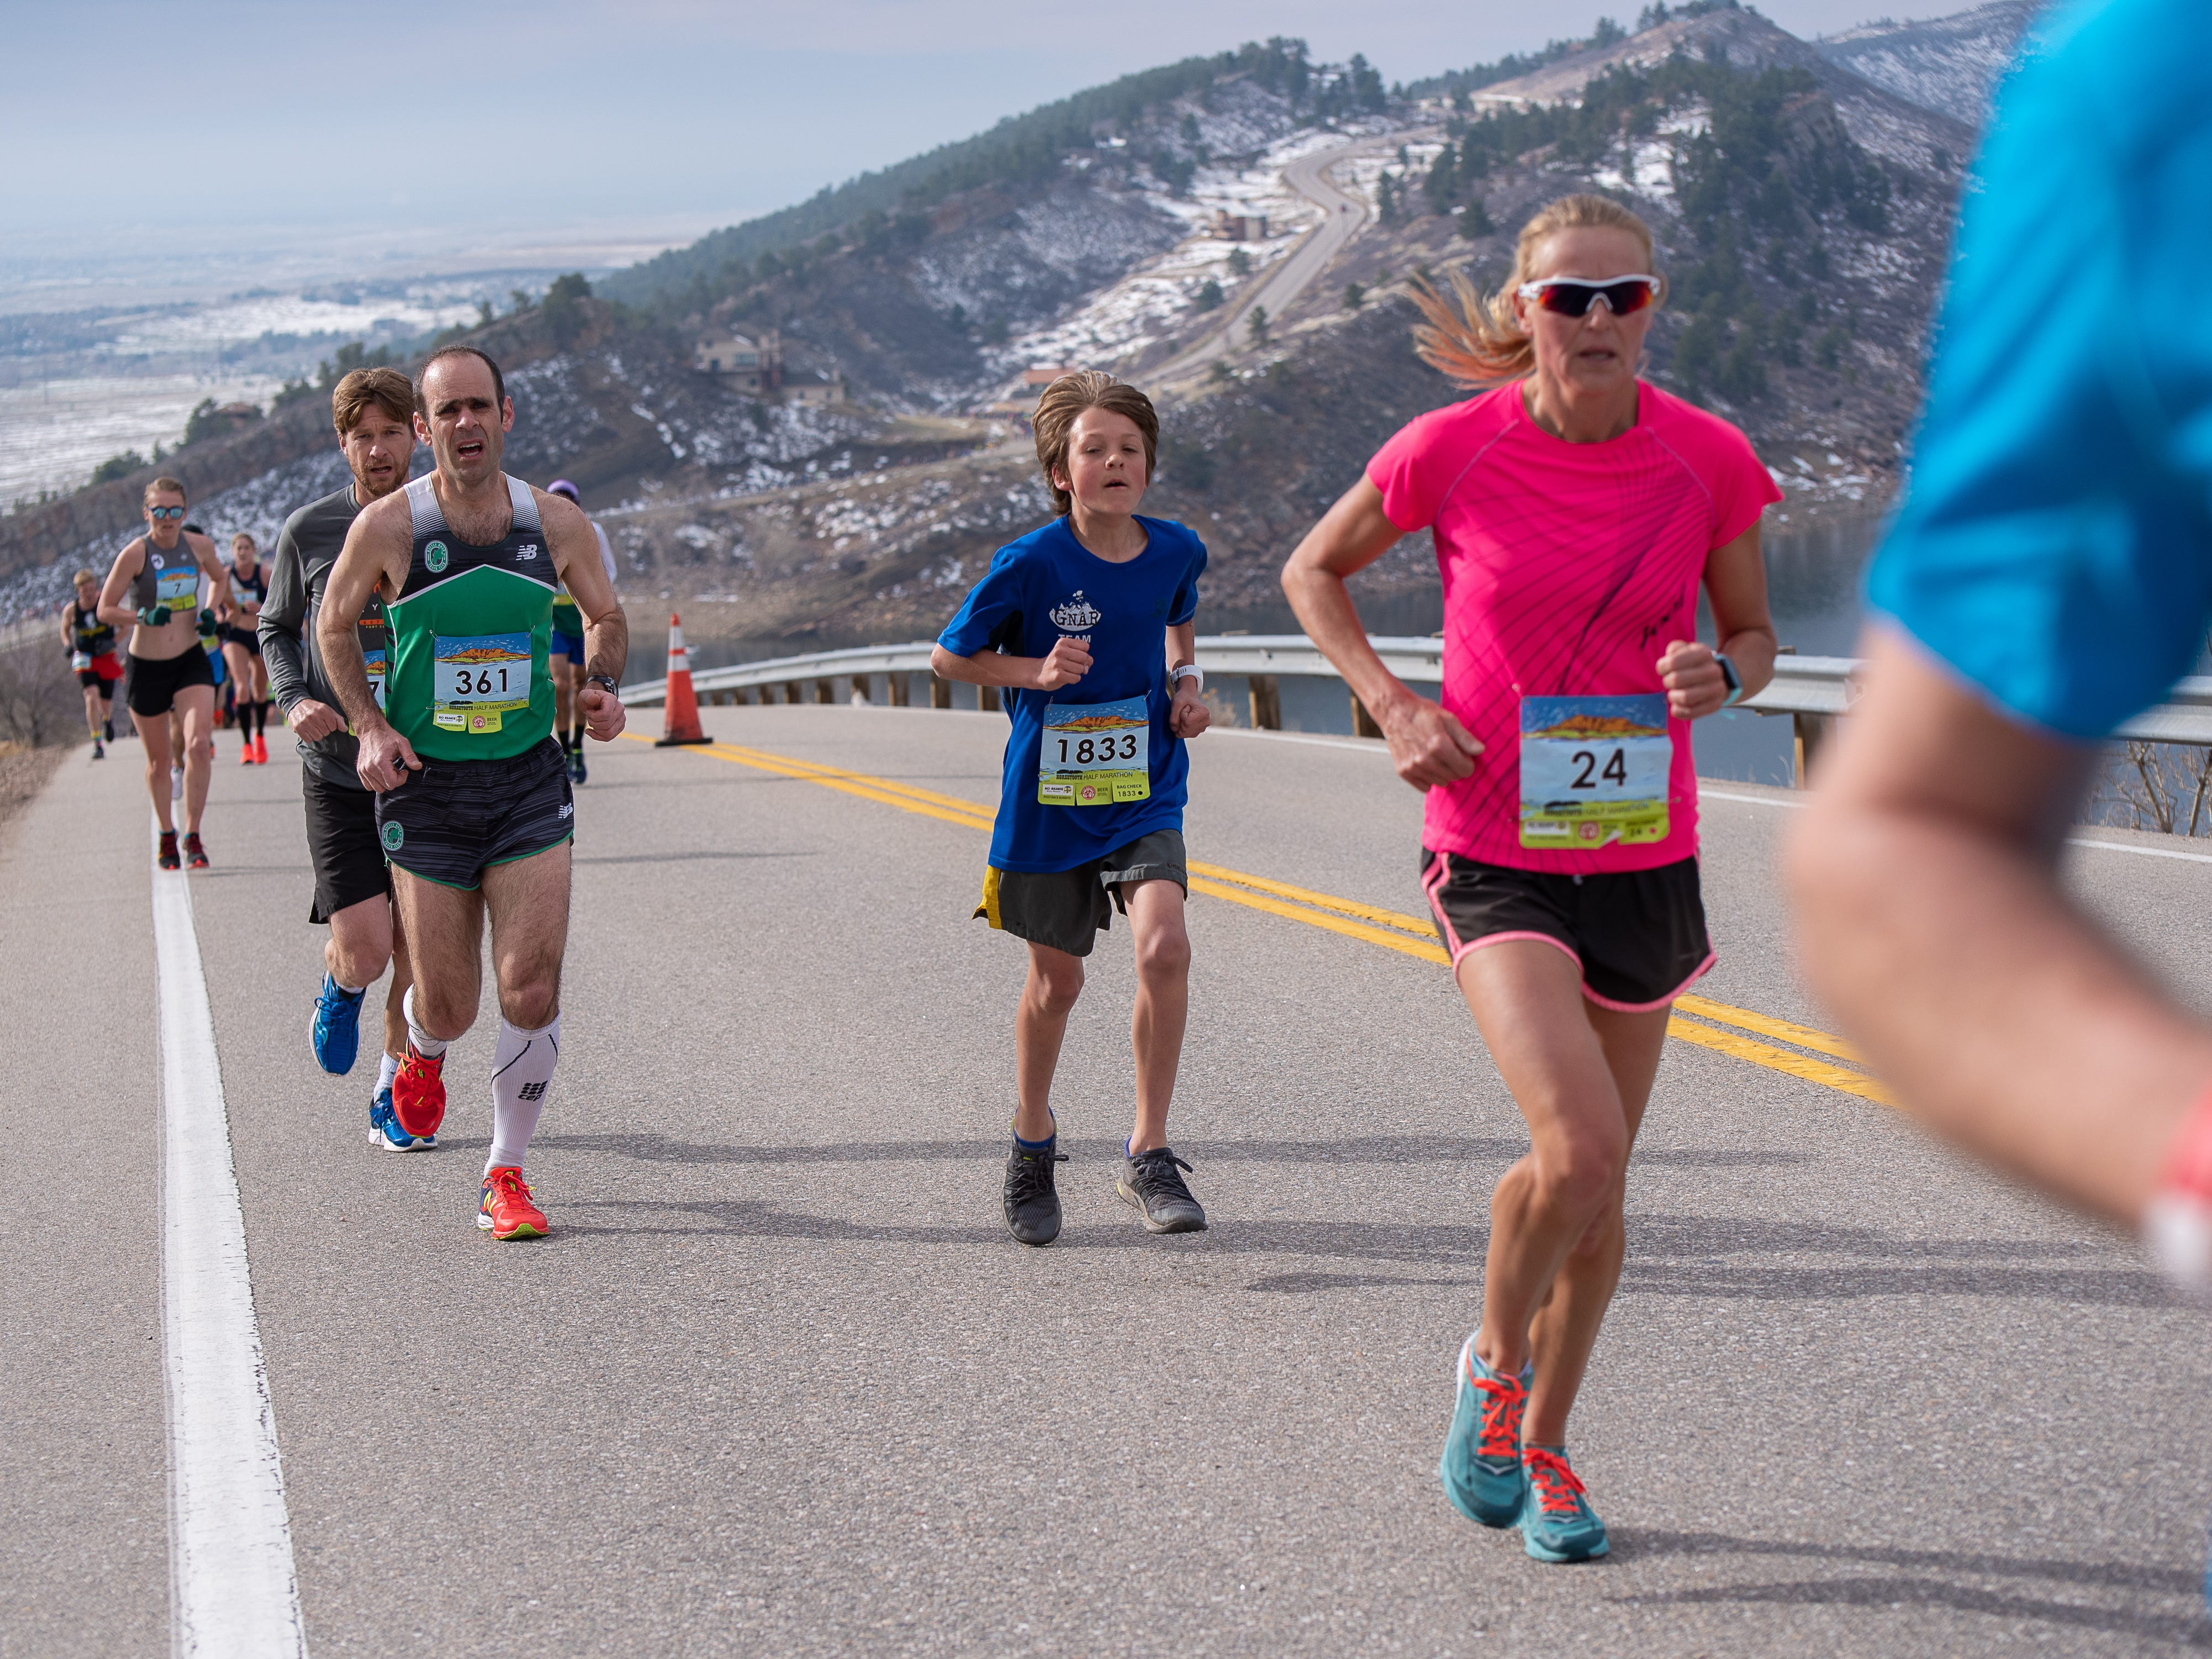 Alistair Clark, 12, finished 58th in the Horsetooth Half Marathon on Sunday. Elite runners approach the top of Monster Mountain along Horsetooth Reservoir during the Horsetooth Half Marathon on Sunday, April 14 2019, in Fort Collins, Colo.